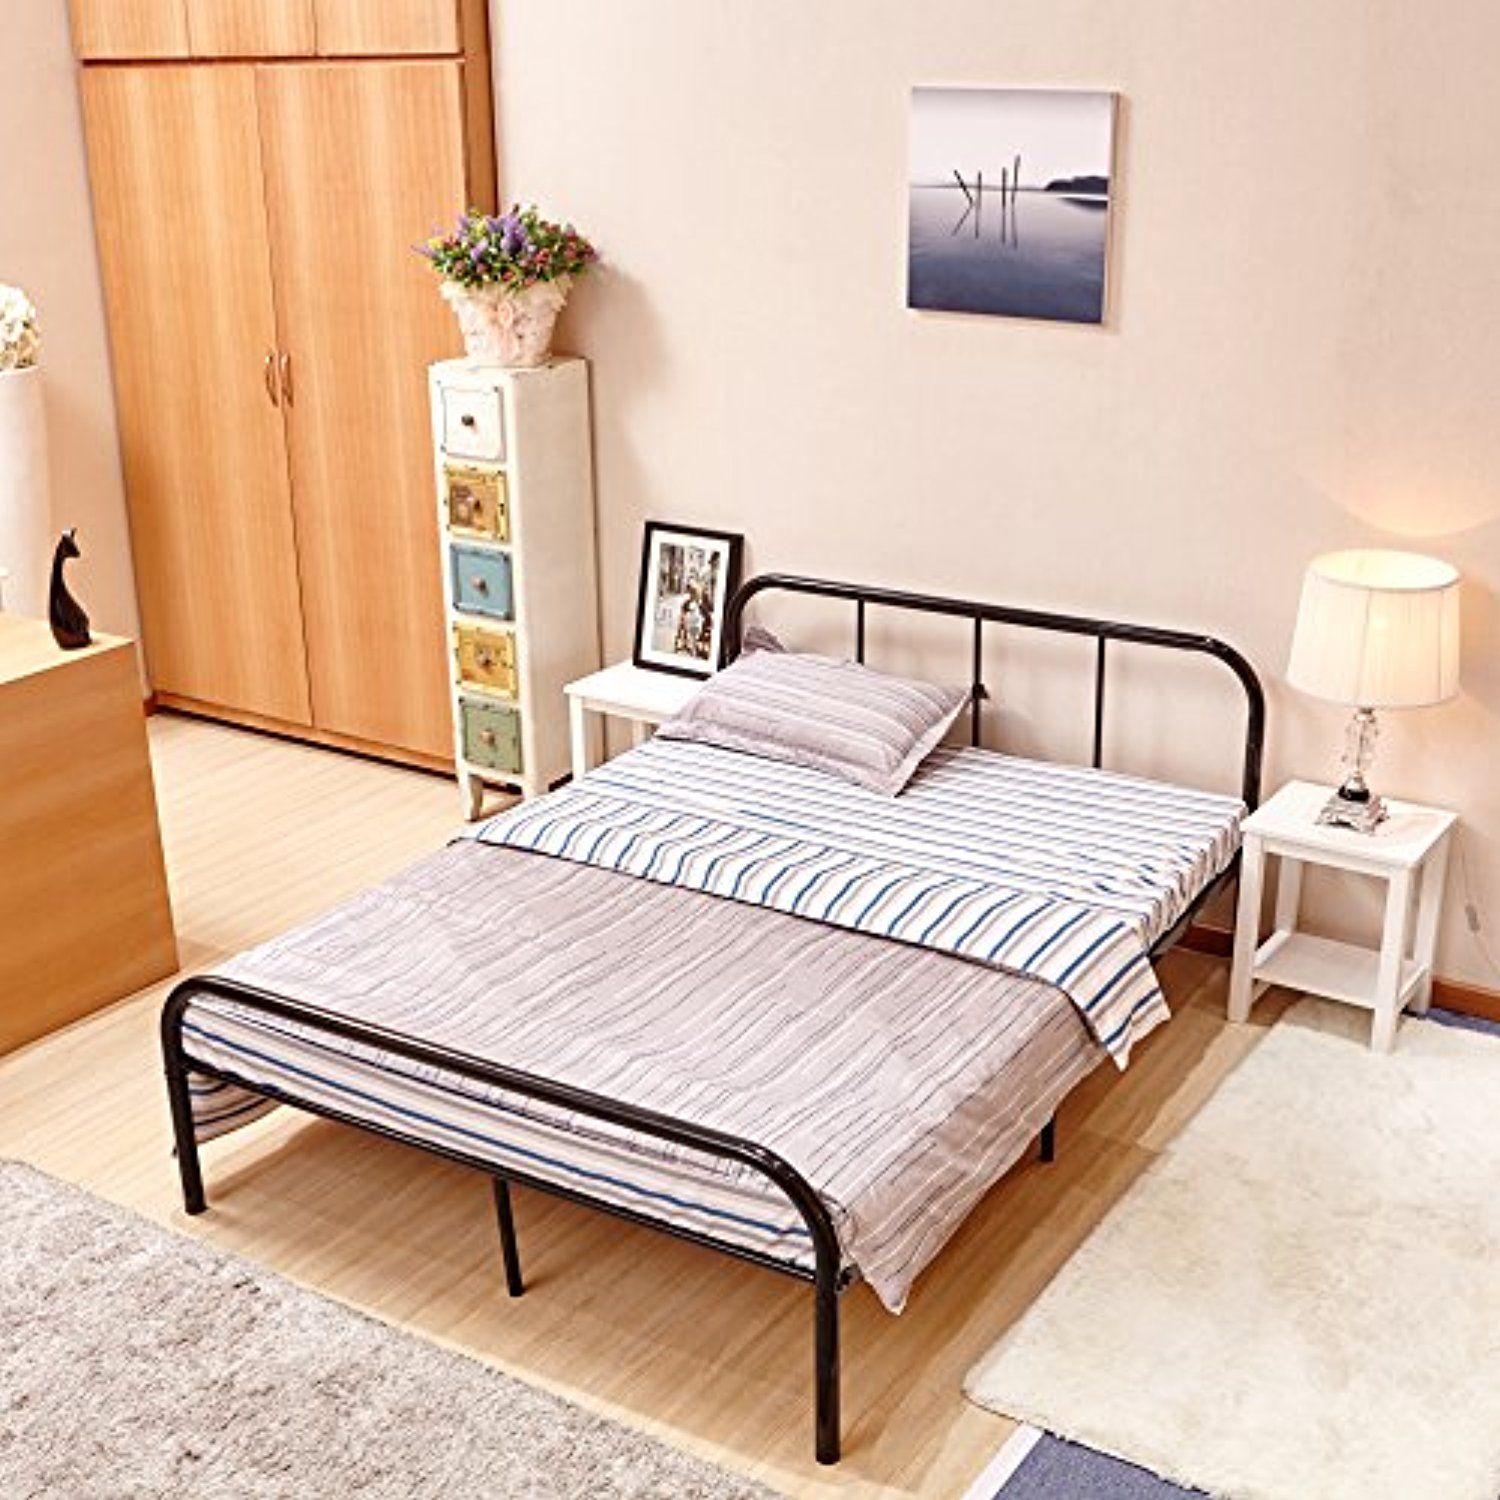 Greenforest Full Size Bed Frame With Headboard And Stable Metal